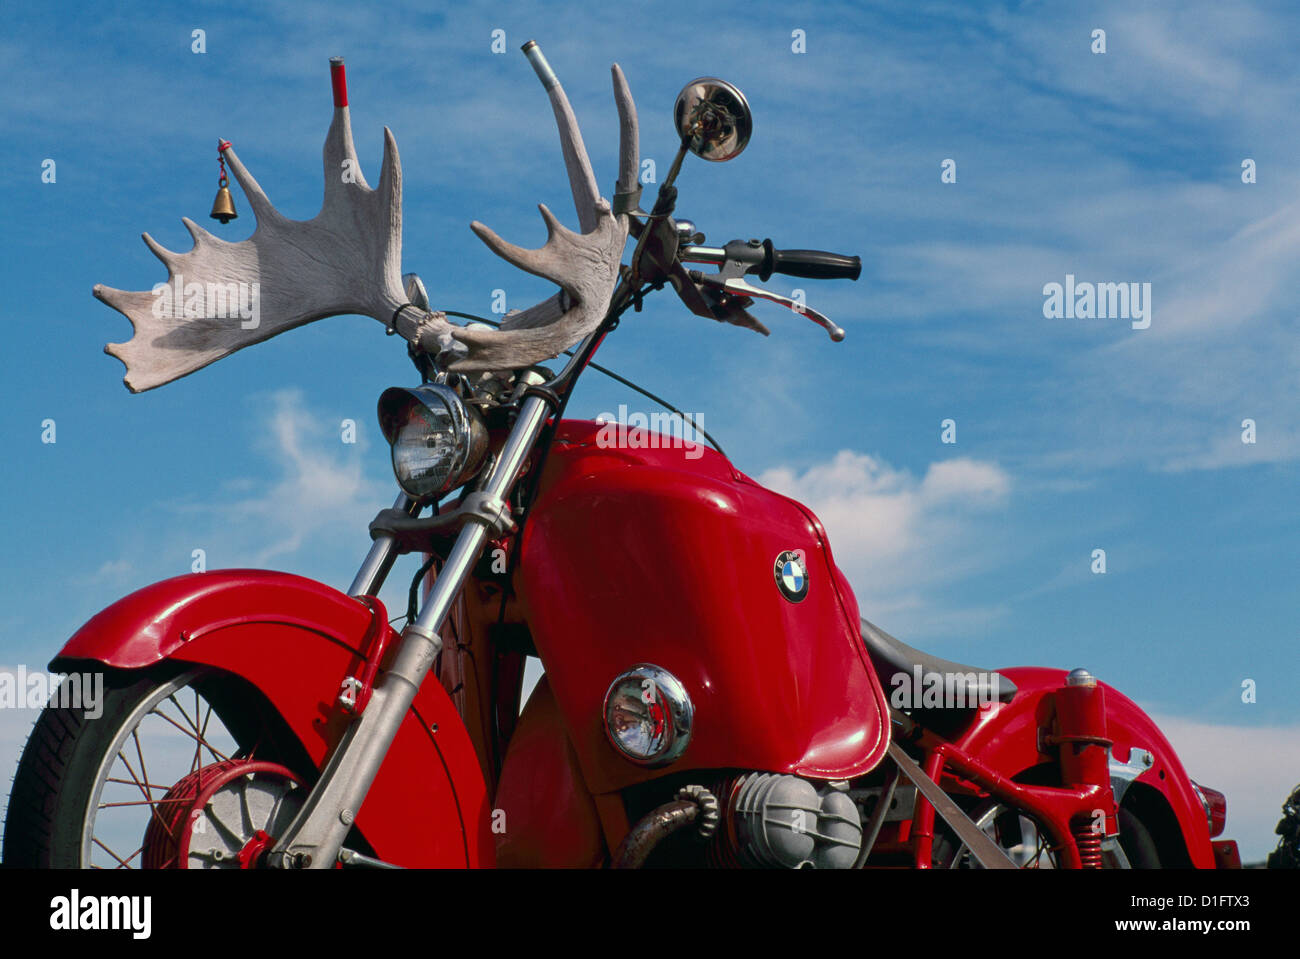 classic red bmw motorcycle with moose antlers mounted on the stock